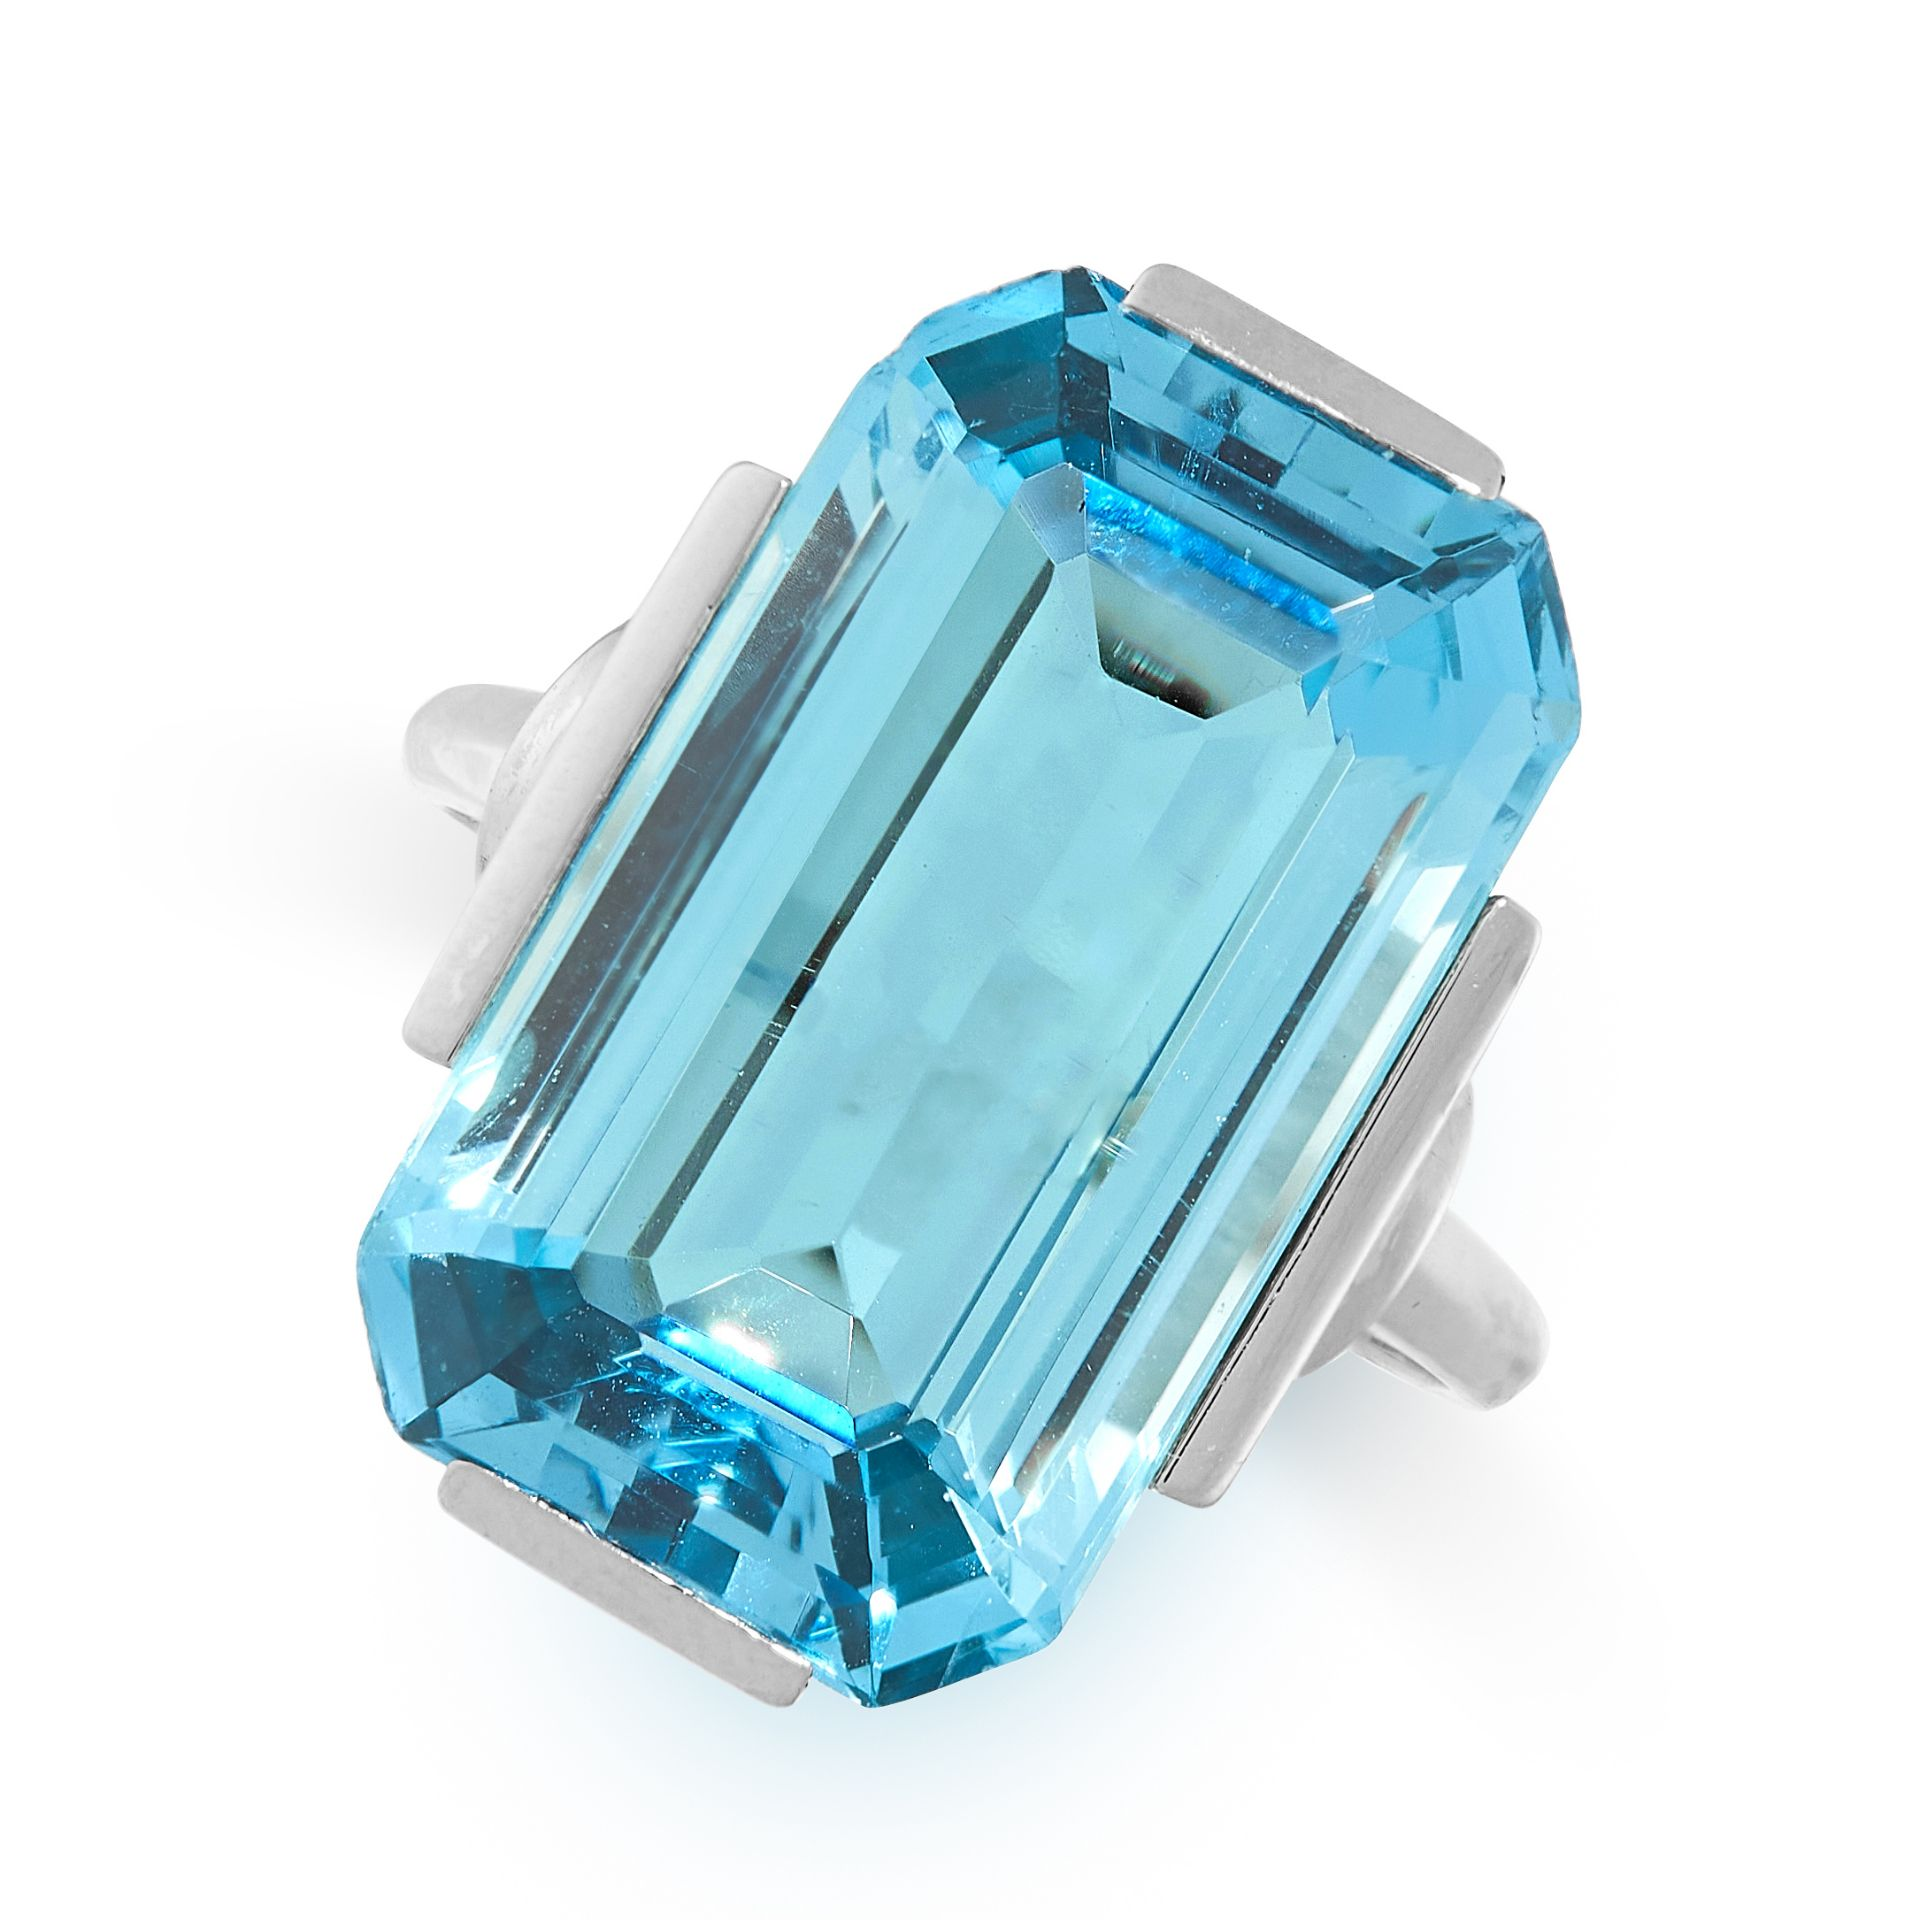 A FINE AQUAMARINE DRESS RING in 14ct white gold, set with an emerald cut aquamarine of 15.23 carats,